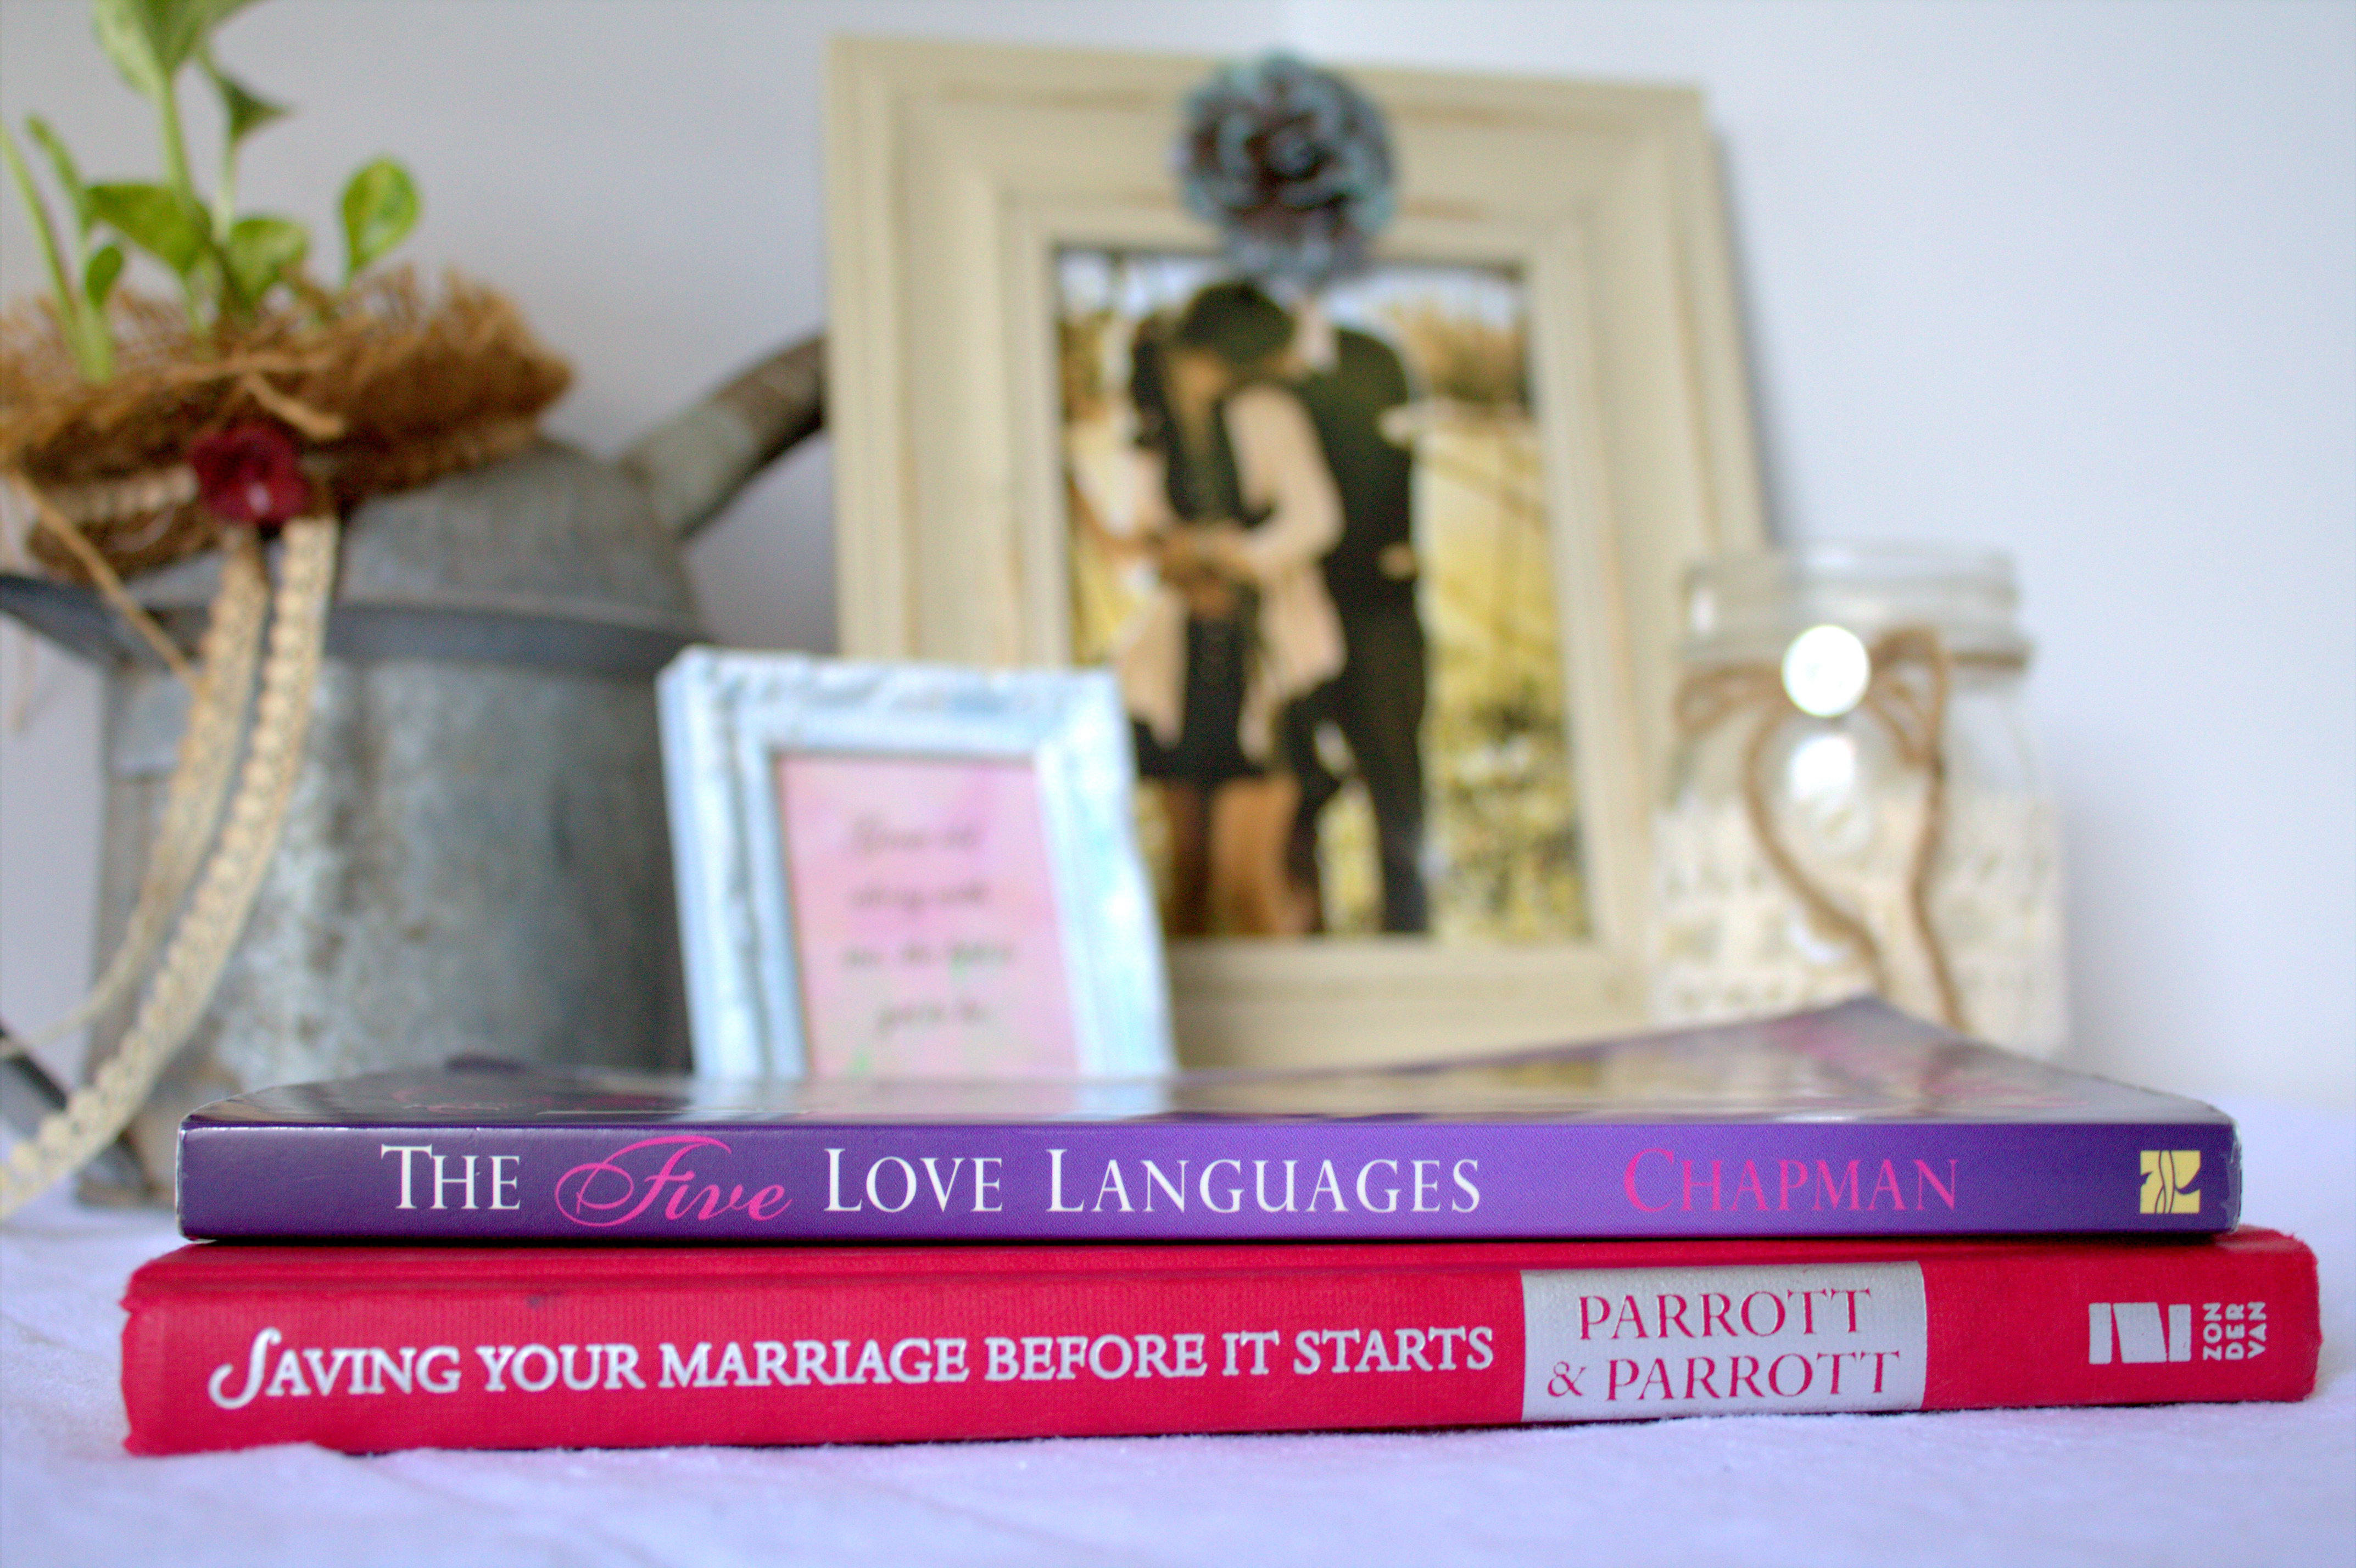 2 Books to Read Before Marriage